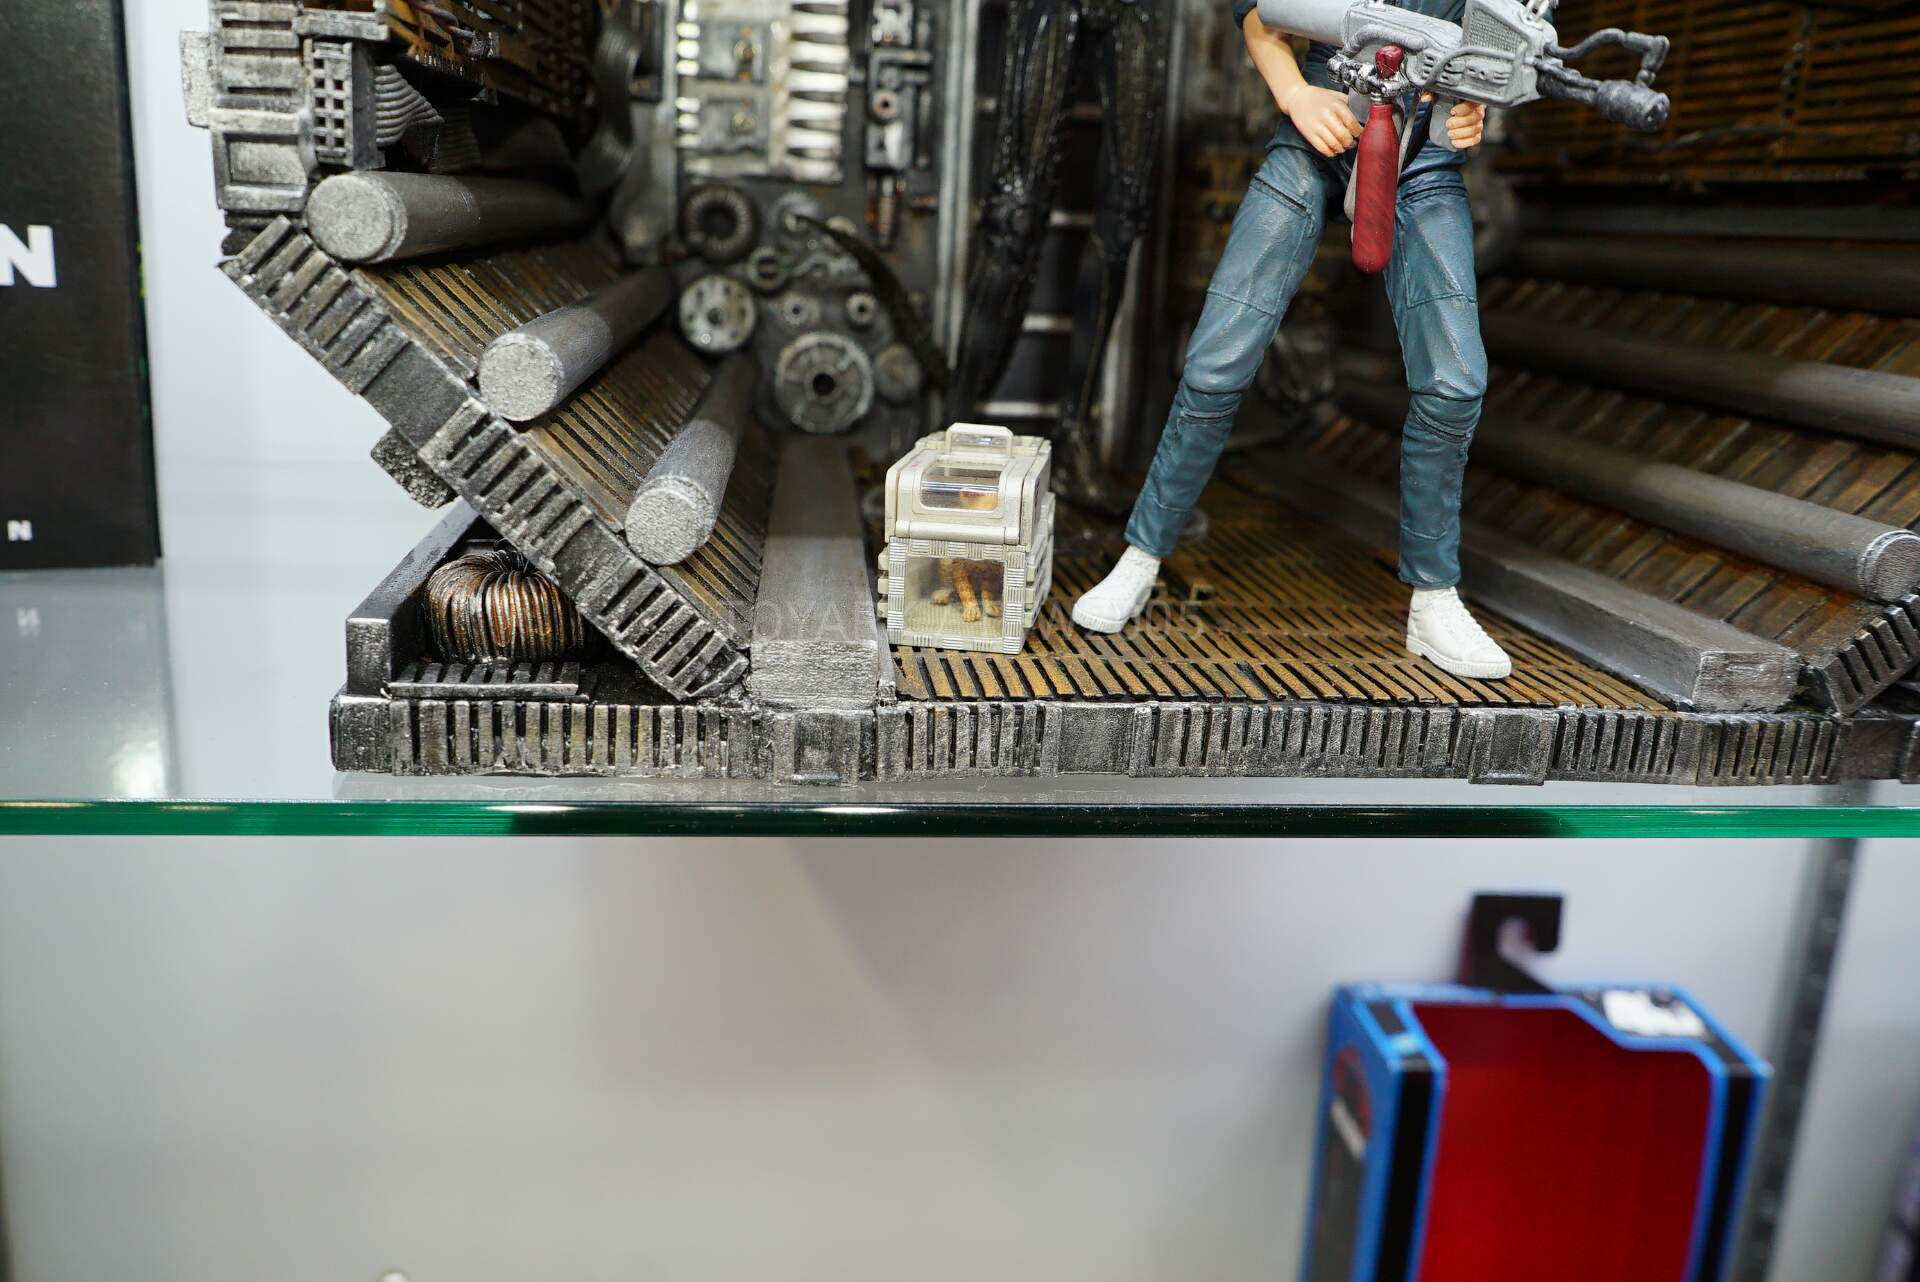 Toy-Fair-2020-NECA-Alien-and-Predator-003.jpg